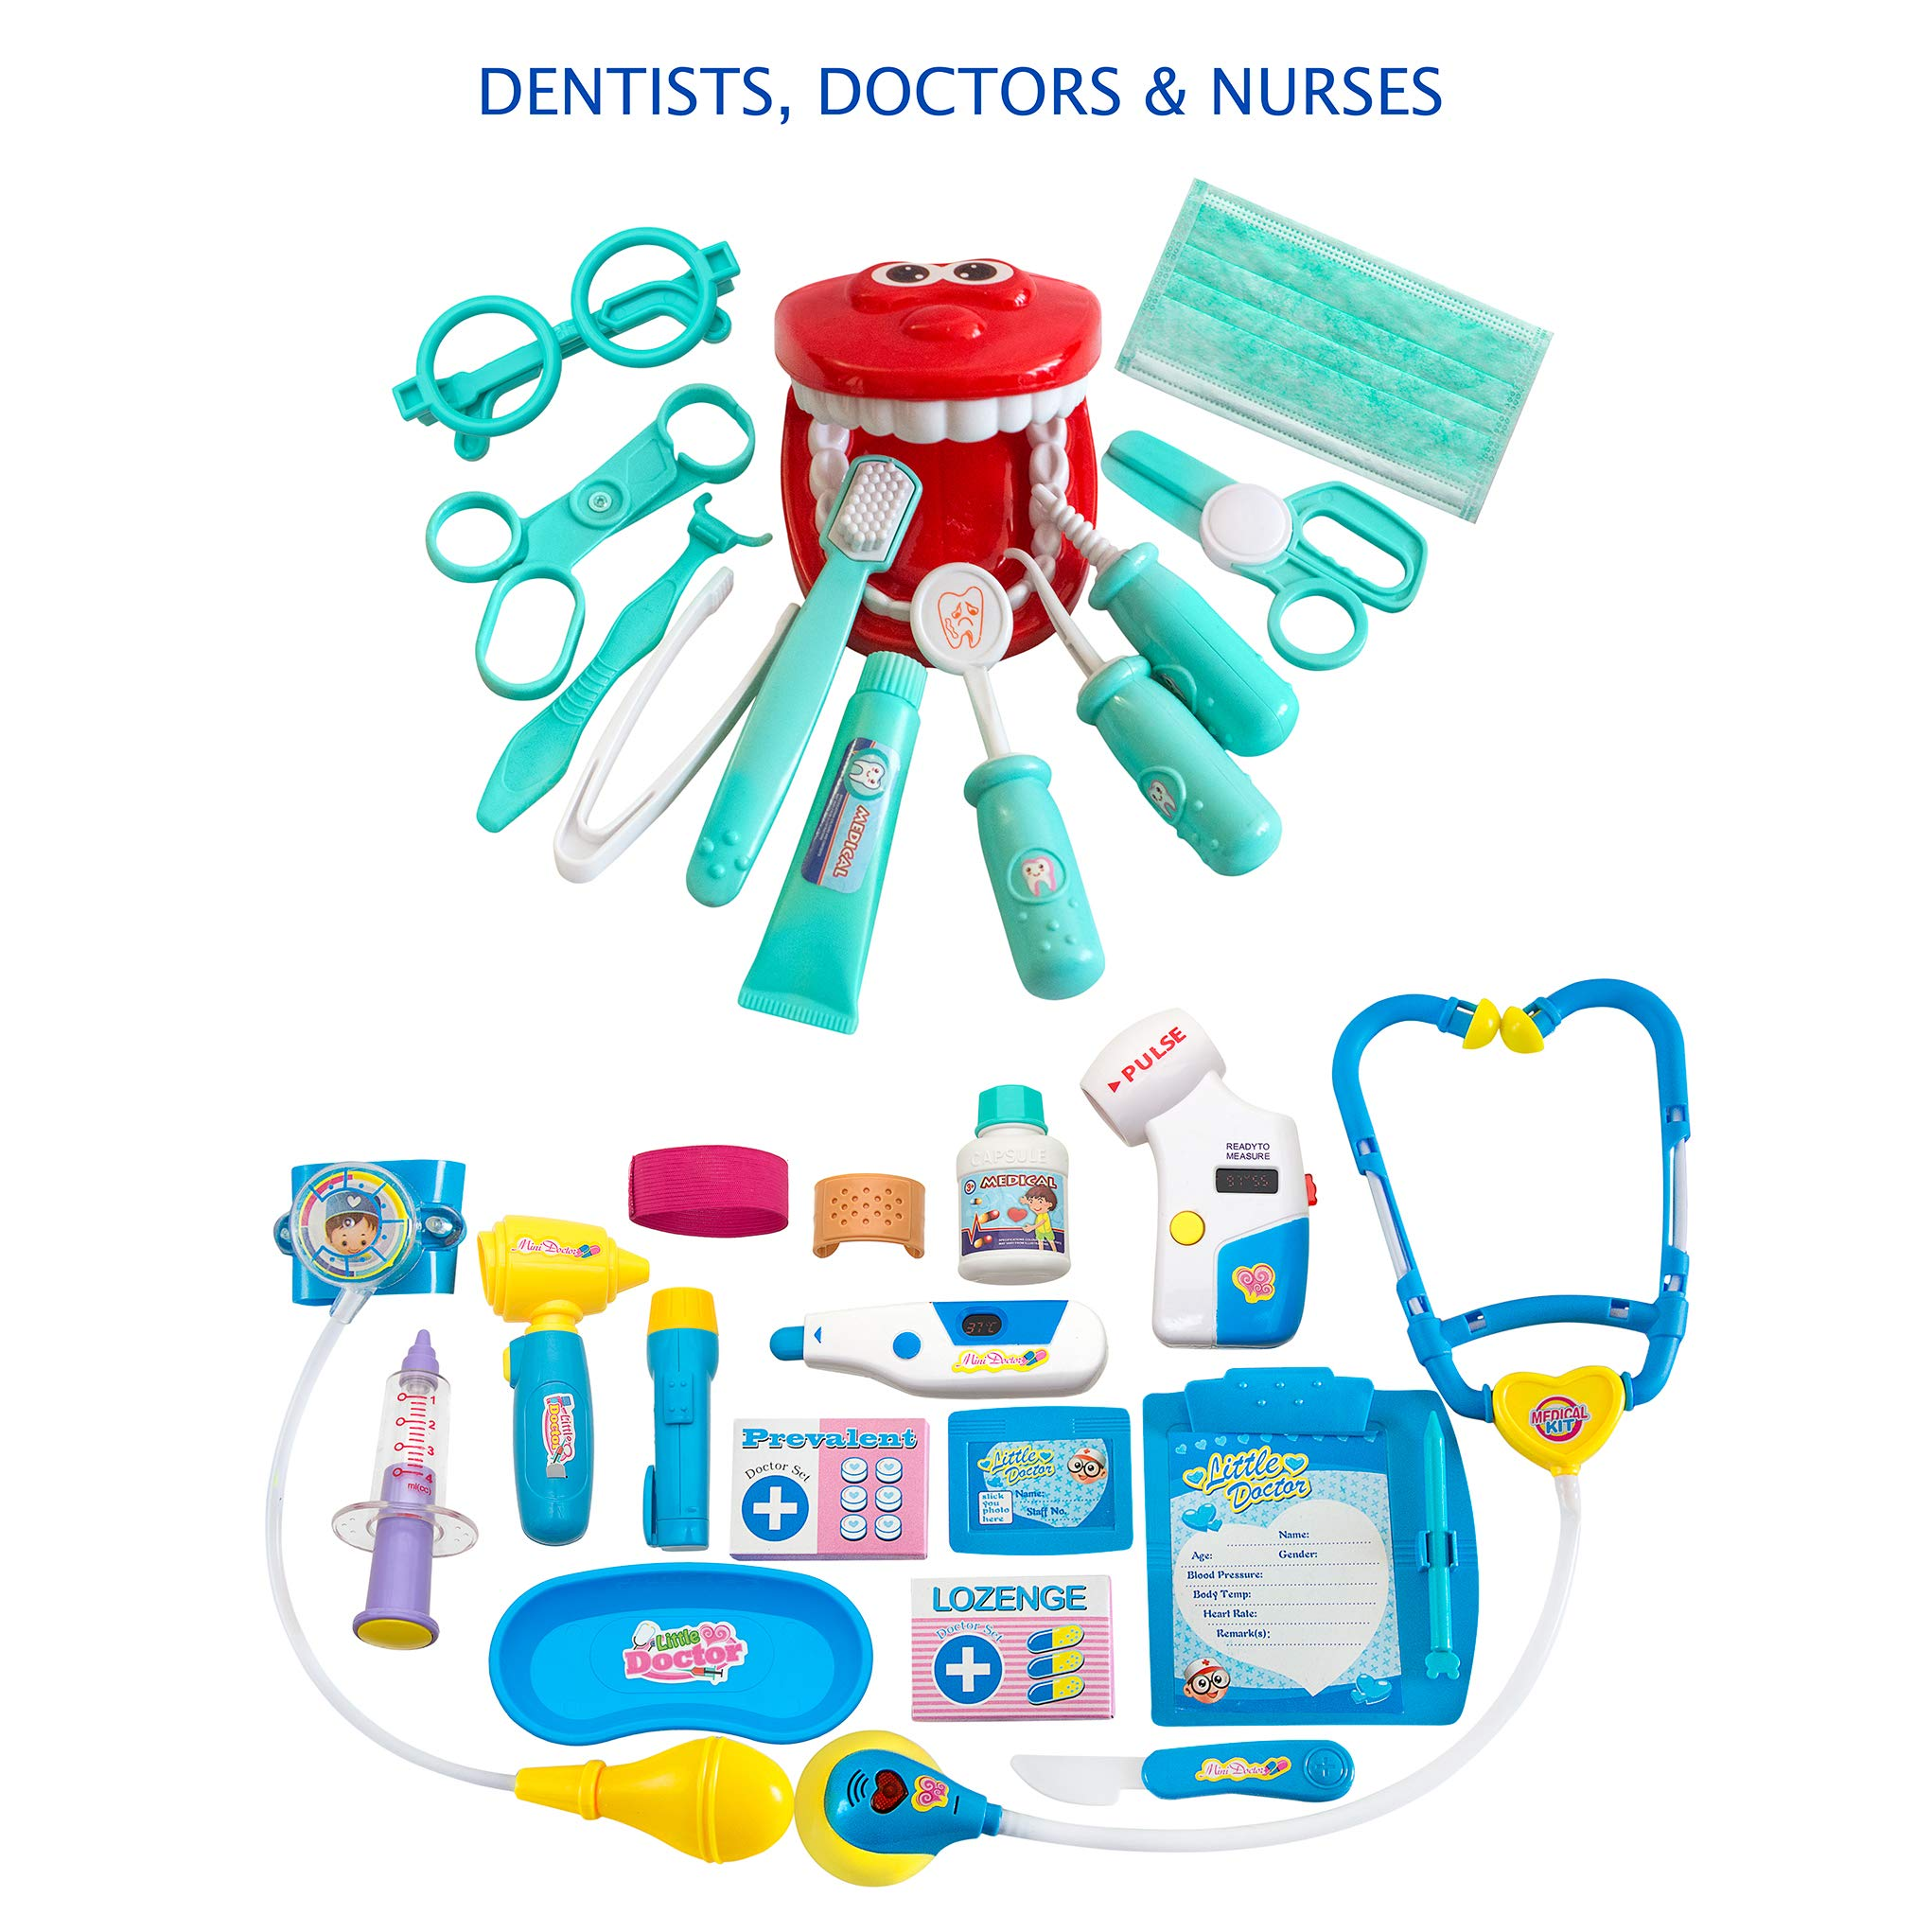 BRITENWAY Educational Doctor Medical Pretend Play Toy Set in Storage Box 34 Pcs - Battery Operated Tools with Lights & Sounds - Promote Learning, Hand to Eye Coordination, Fine Motor Skills by BRITENWAY (Image #2)